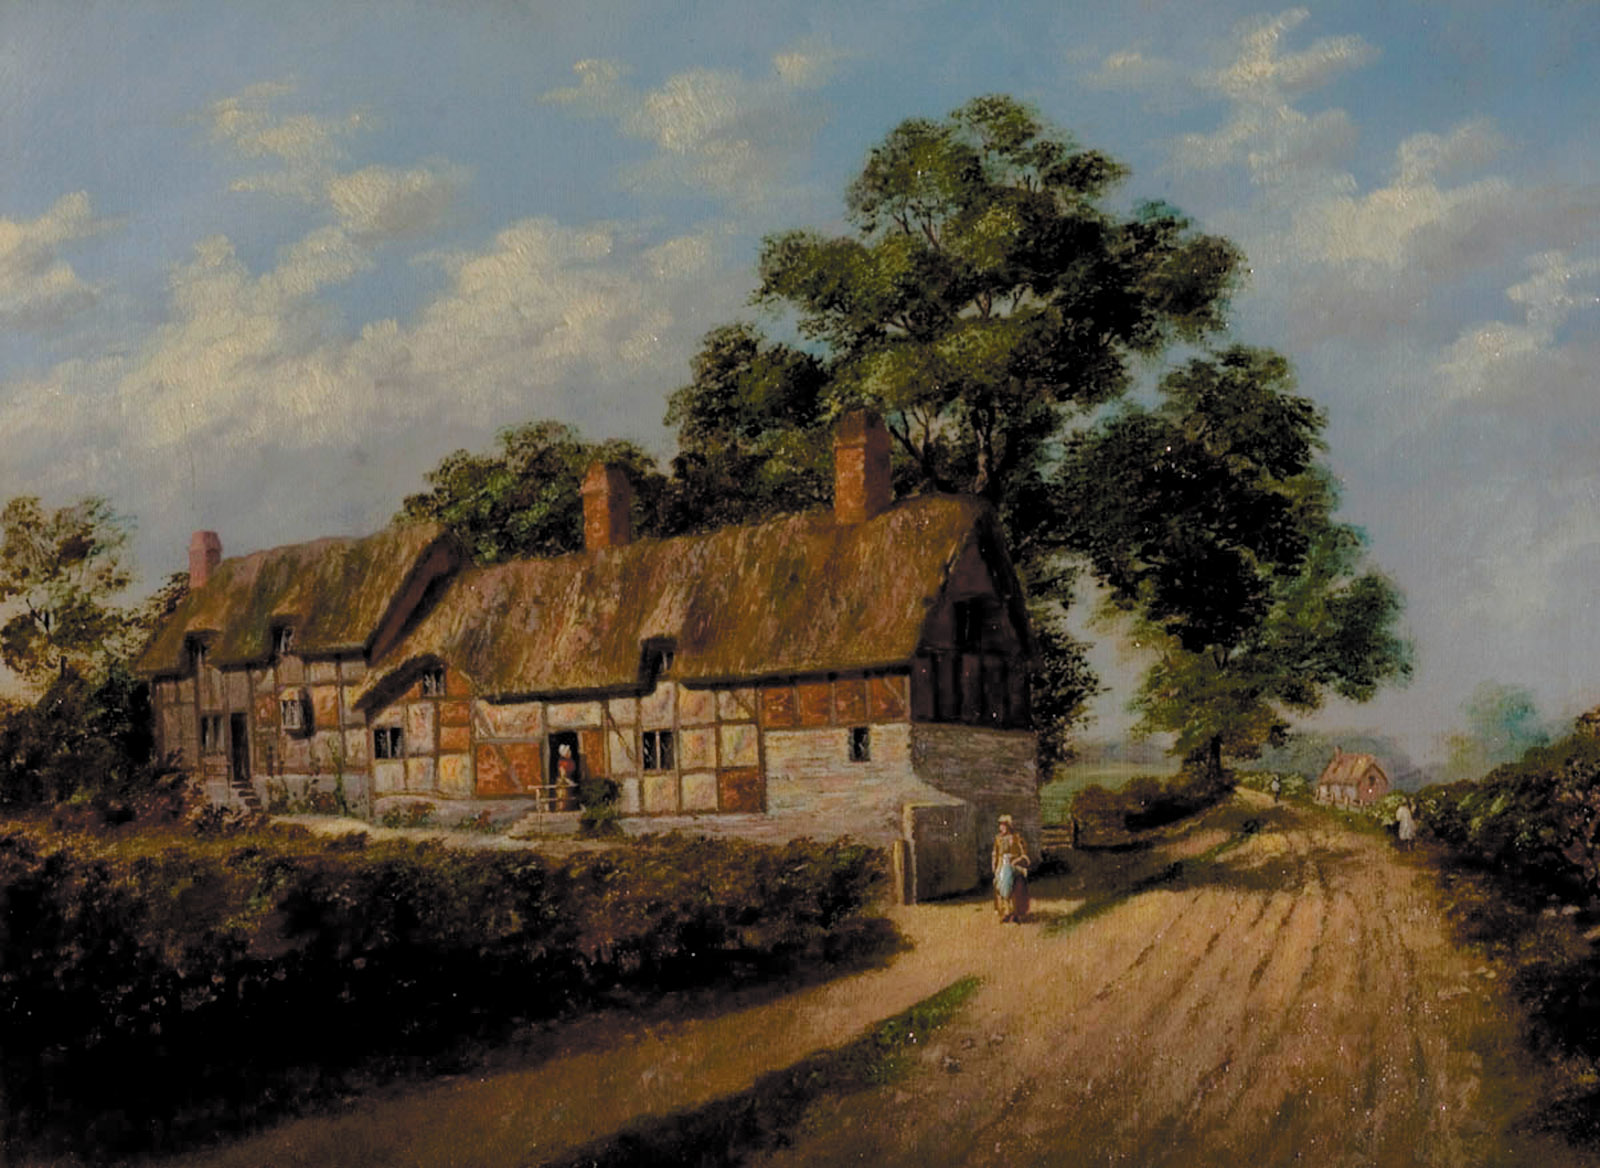 Anne Hathaway's Cottage by John Theobald Marshall